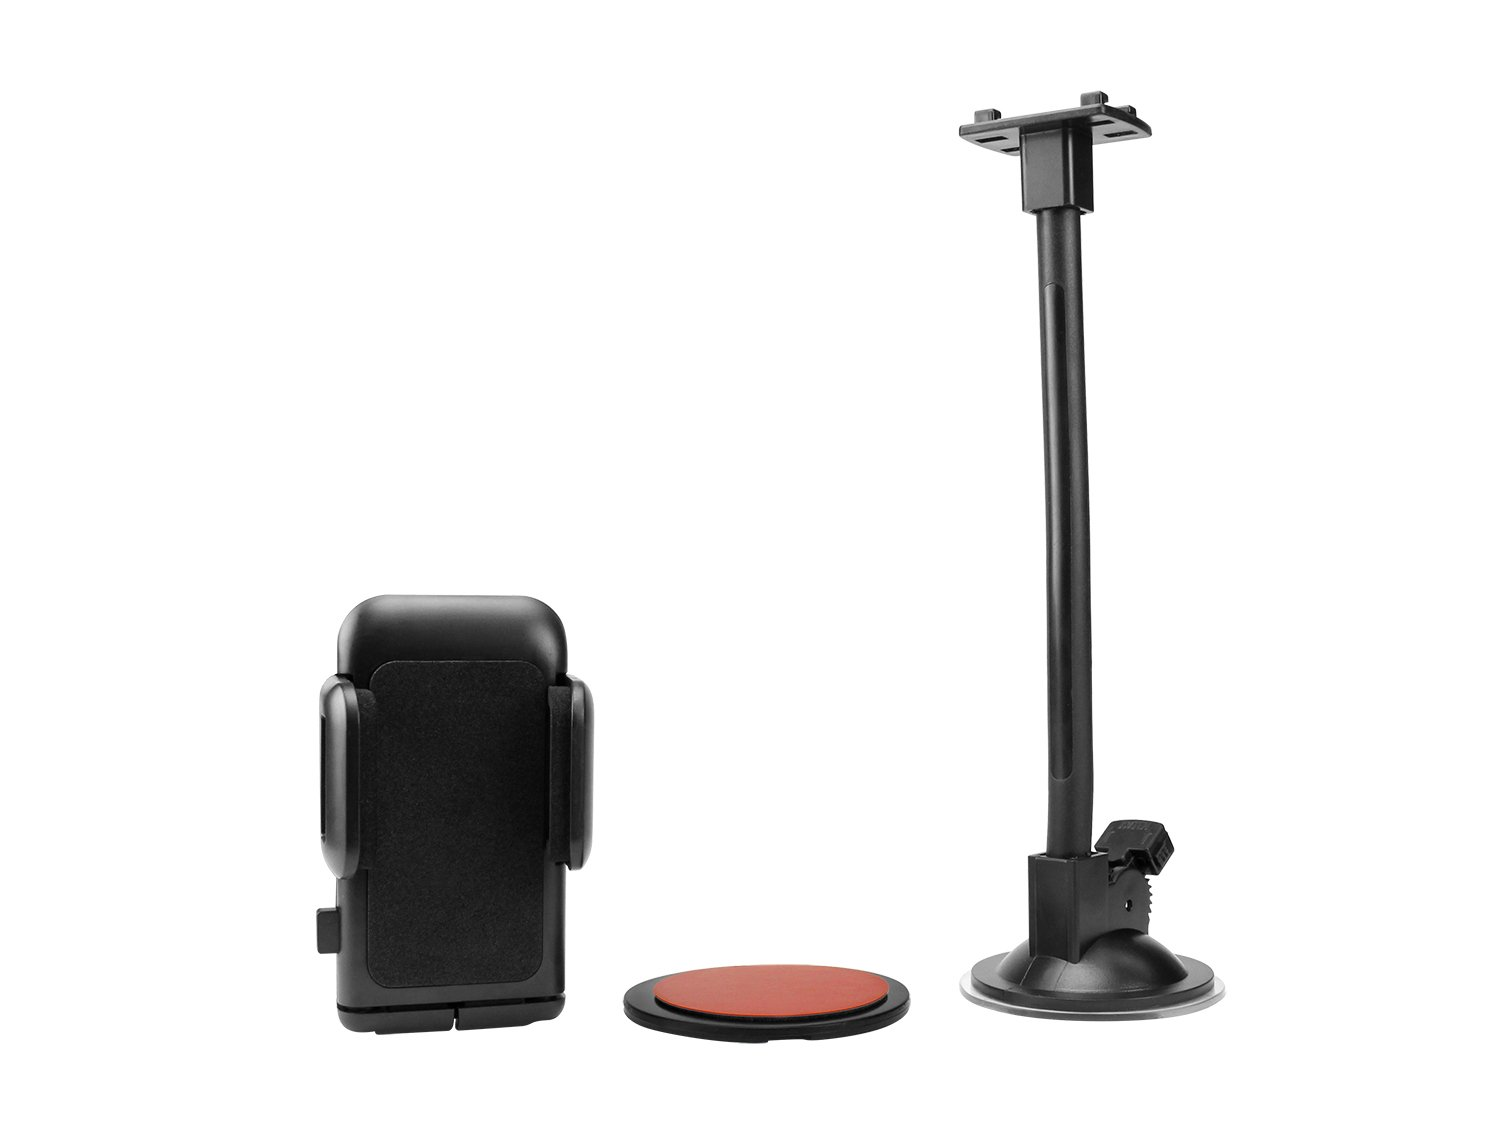 amazon com cellet universal windshield dashboard car mount for amazon com cellet universal windshield dashboard car mount for smartphones up to 3 5 inch wide fixing plate included compatible to samsung galaxy s8 s8